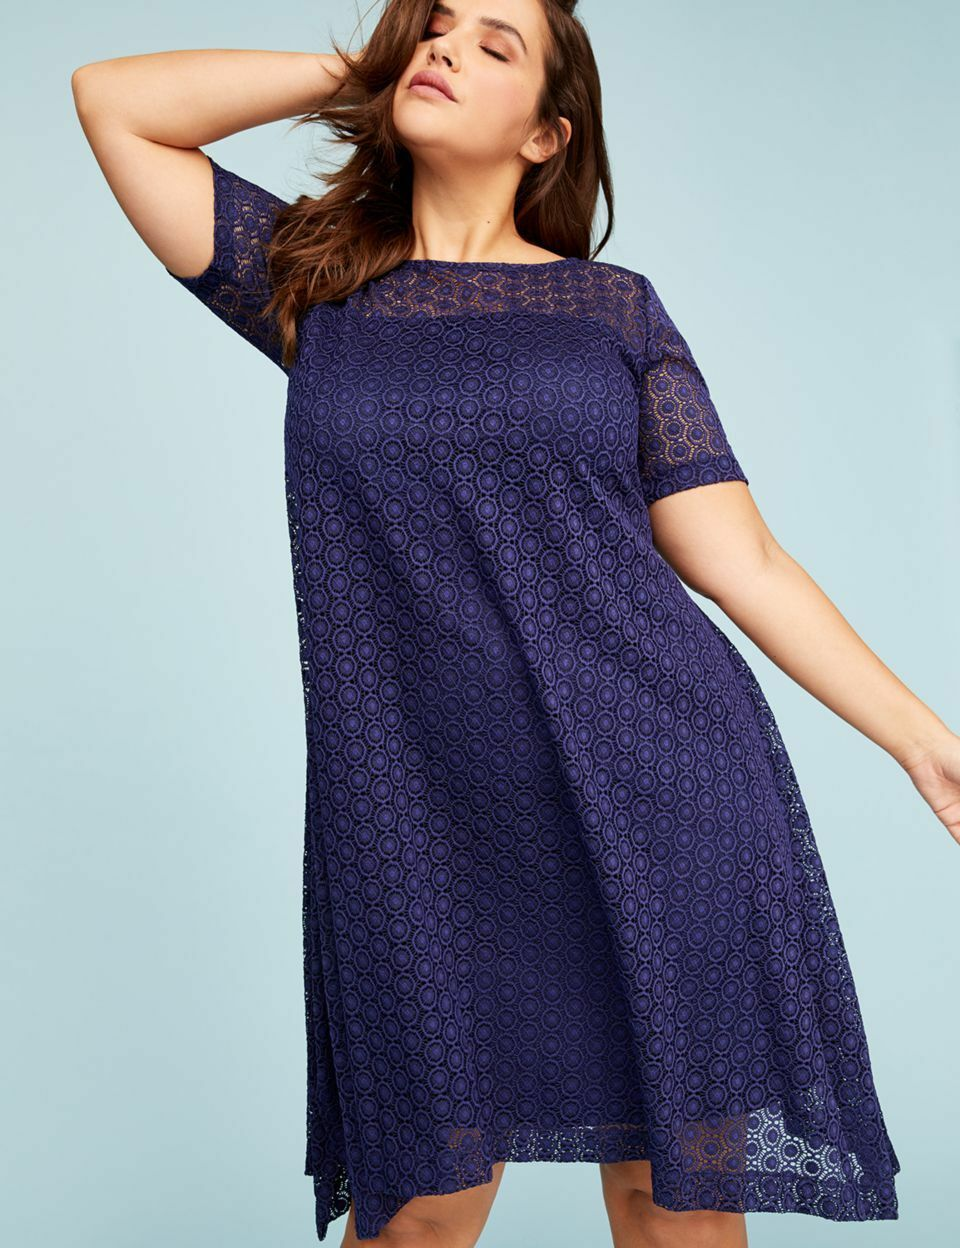 NEW LANE BRYANT PLUS SIZE MEDIEVAL blueE SHORT SLEEVE LACE SWING DRESS SZ 14 16